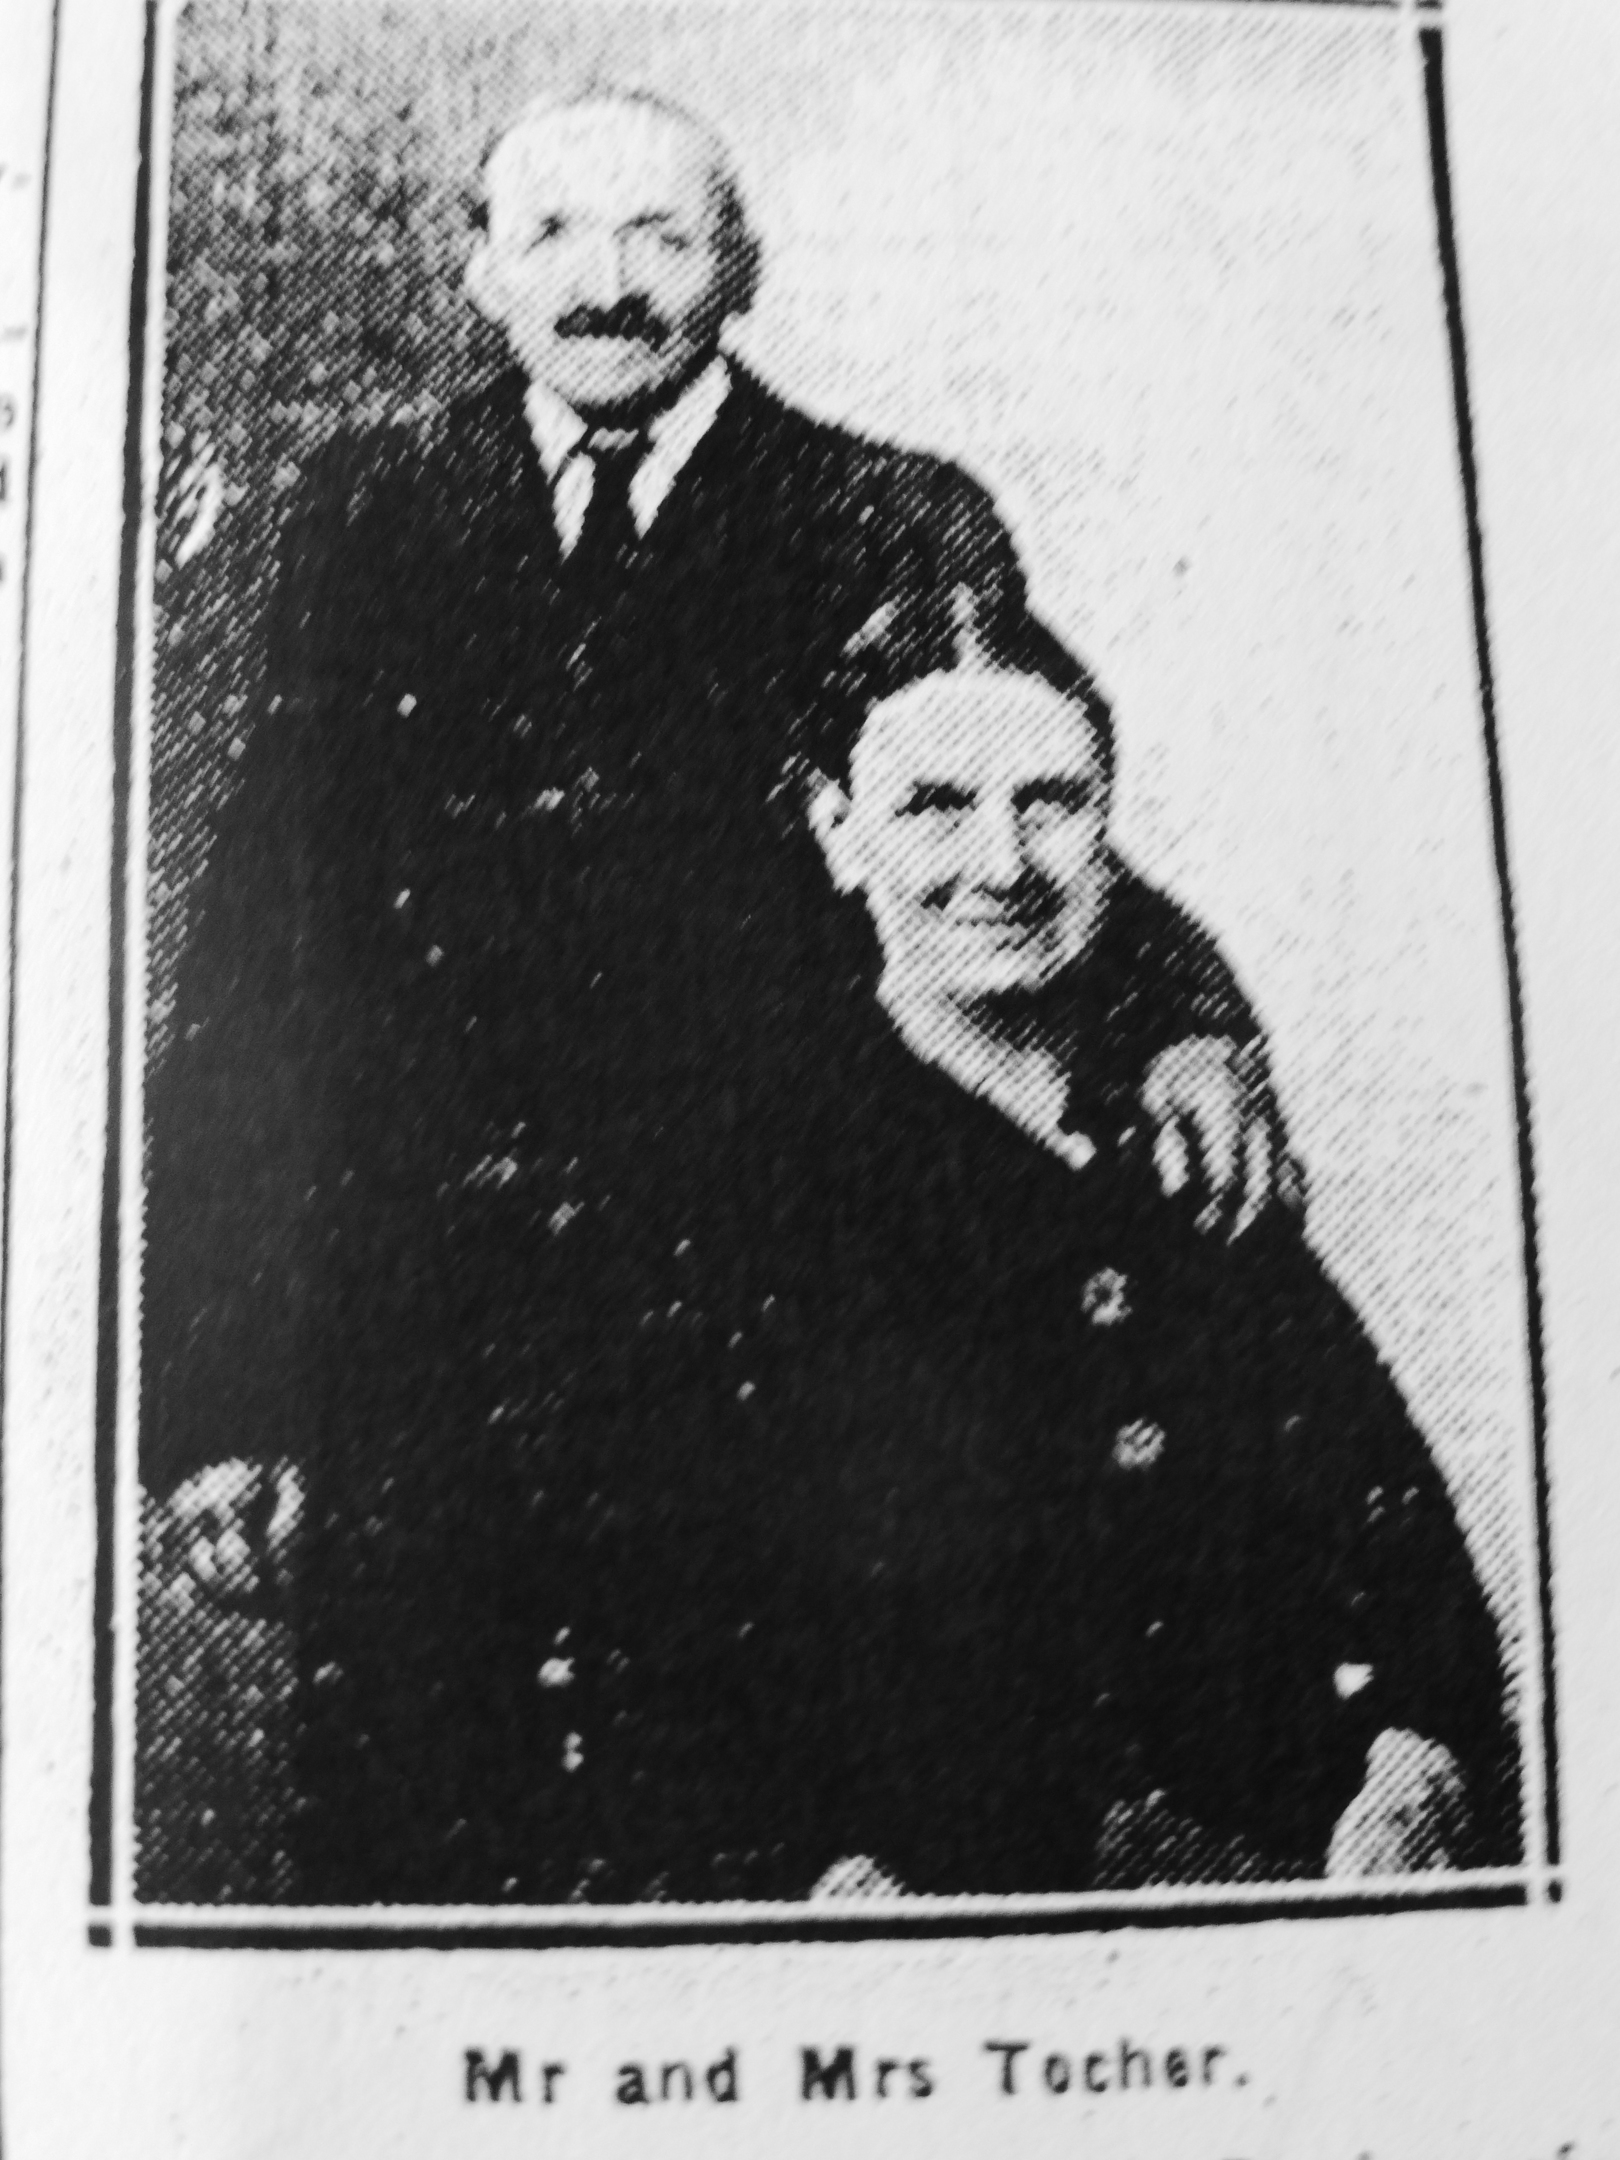 Peter and Elspet Tocher